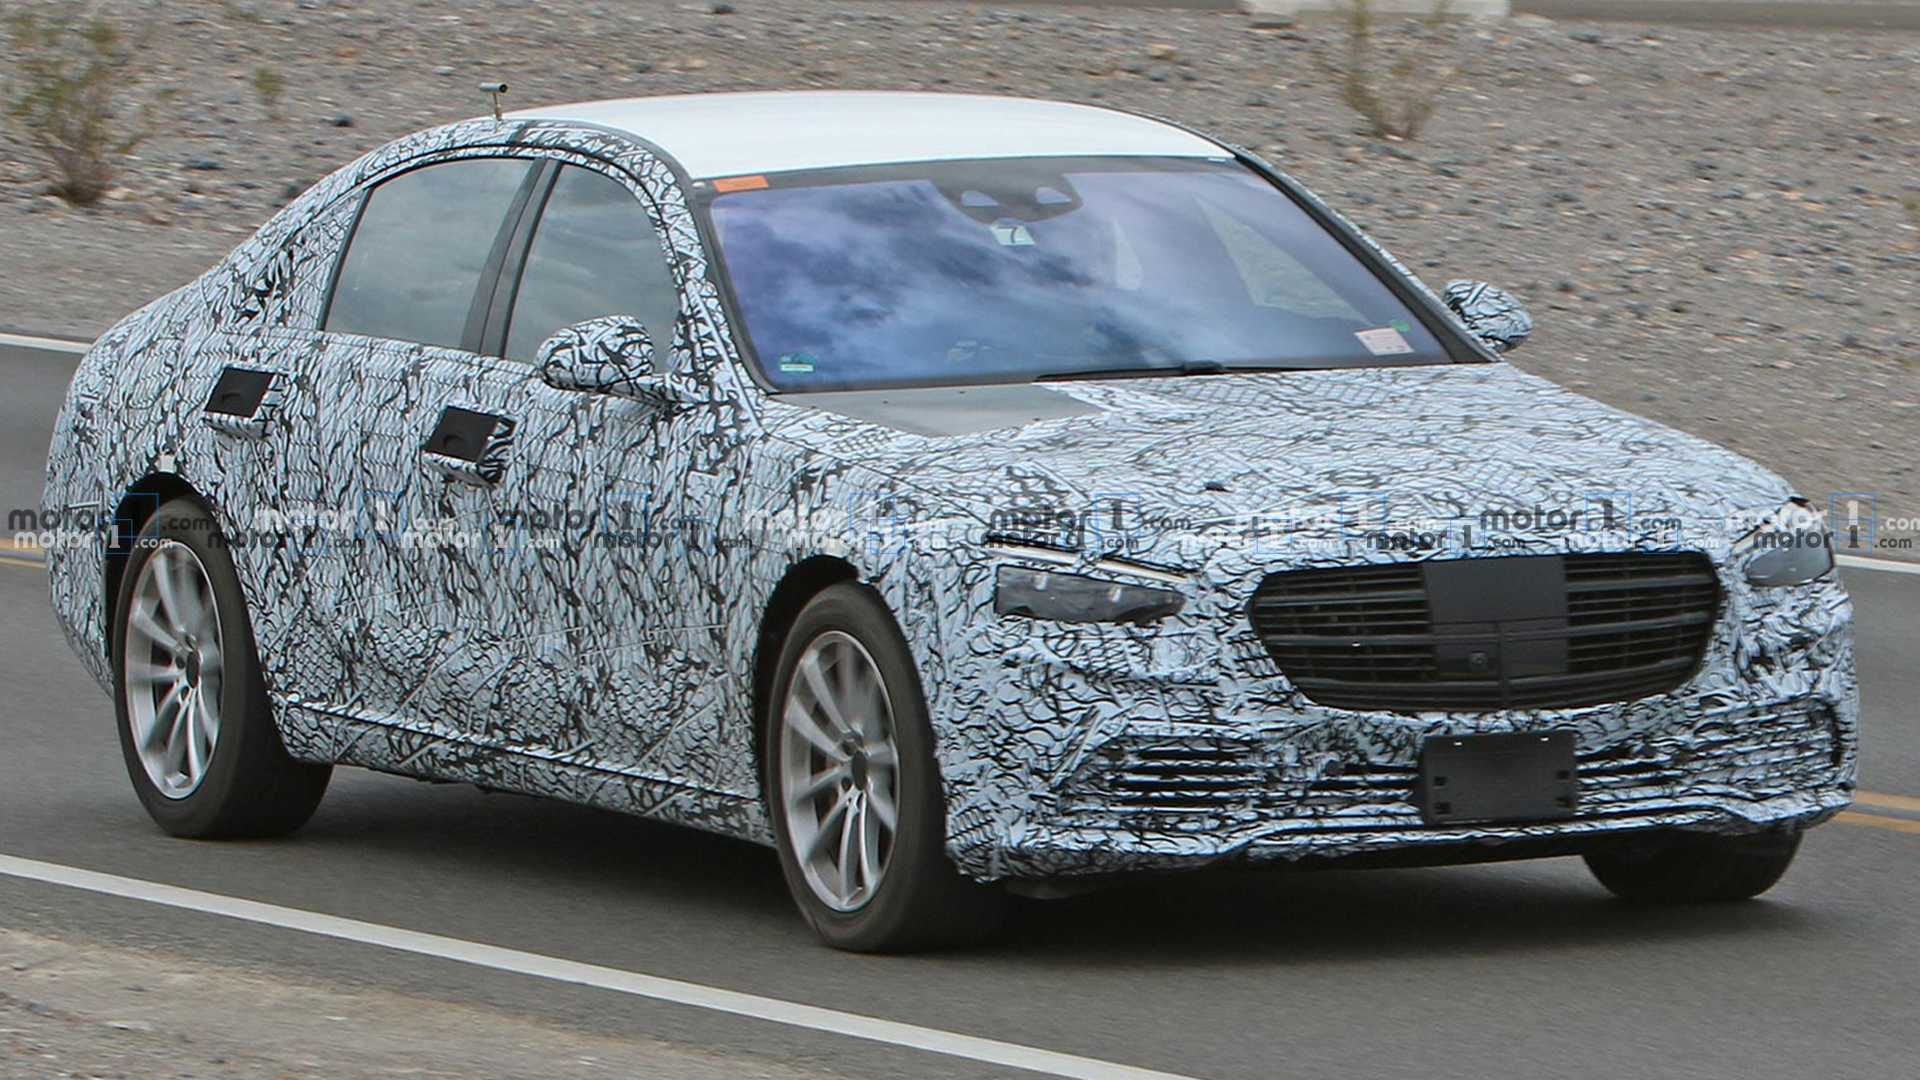 2020 Mercedes Benz S Class History In 2020 Benz S Class Mercedes Benz S Class